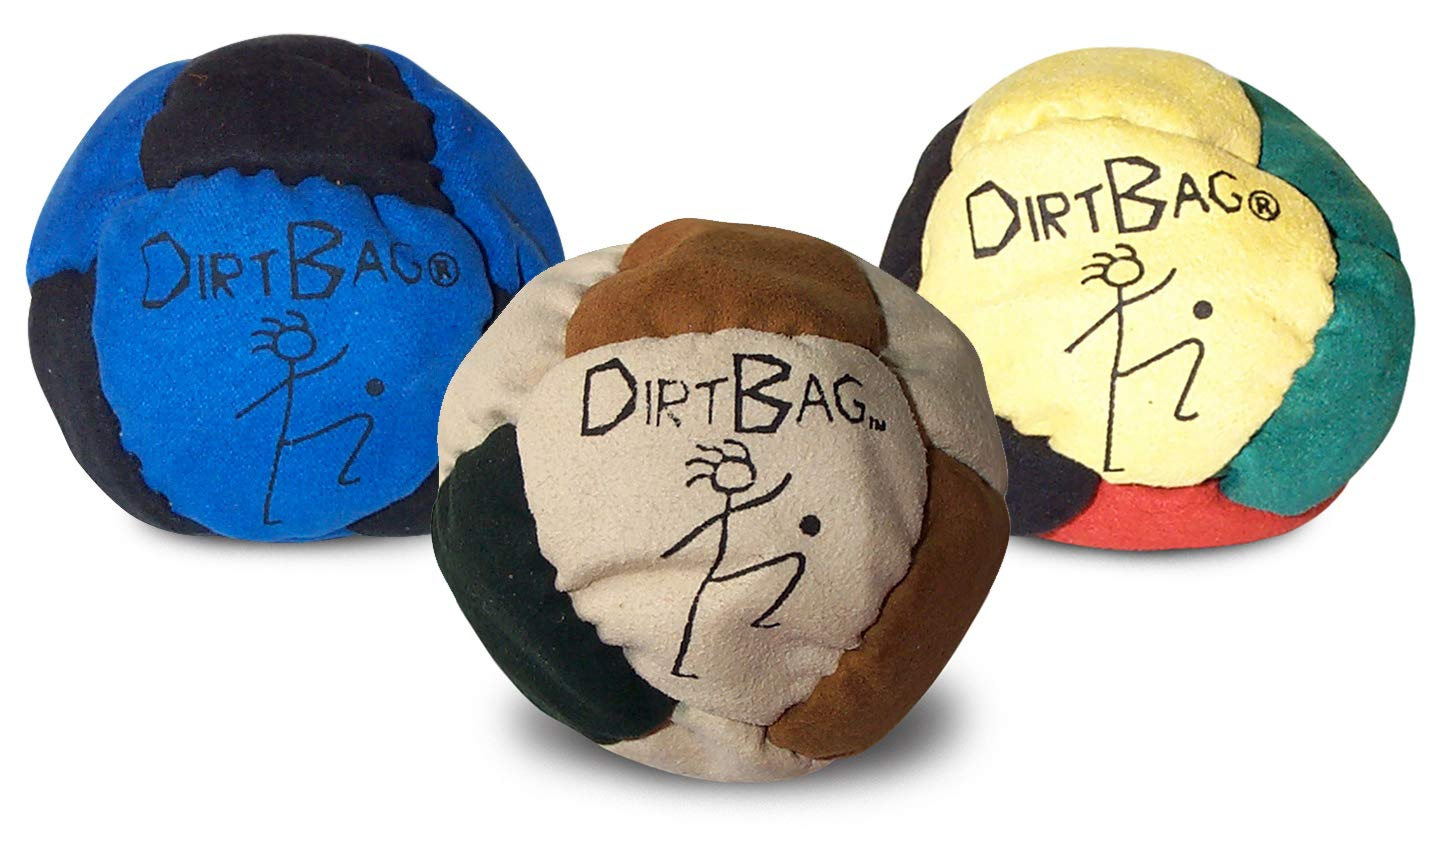 Dirtbag Footbag Classic Sand-Filled Hacky Sack Three Pack - Assorted Colors by World Footbag